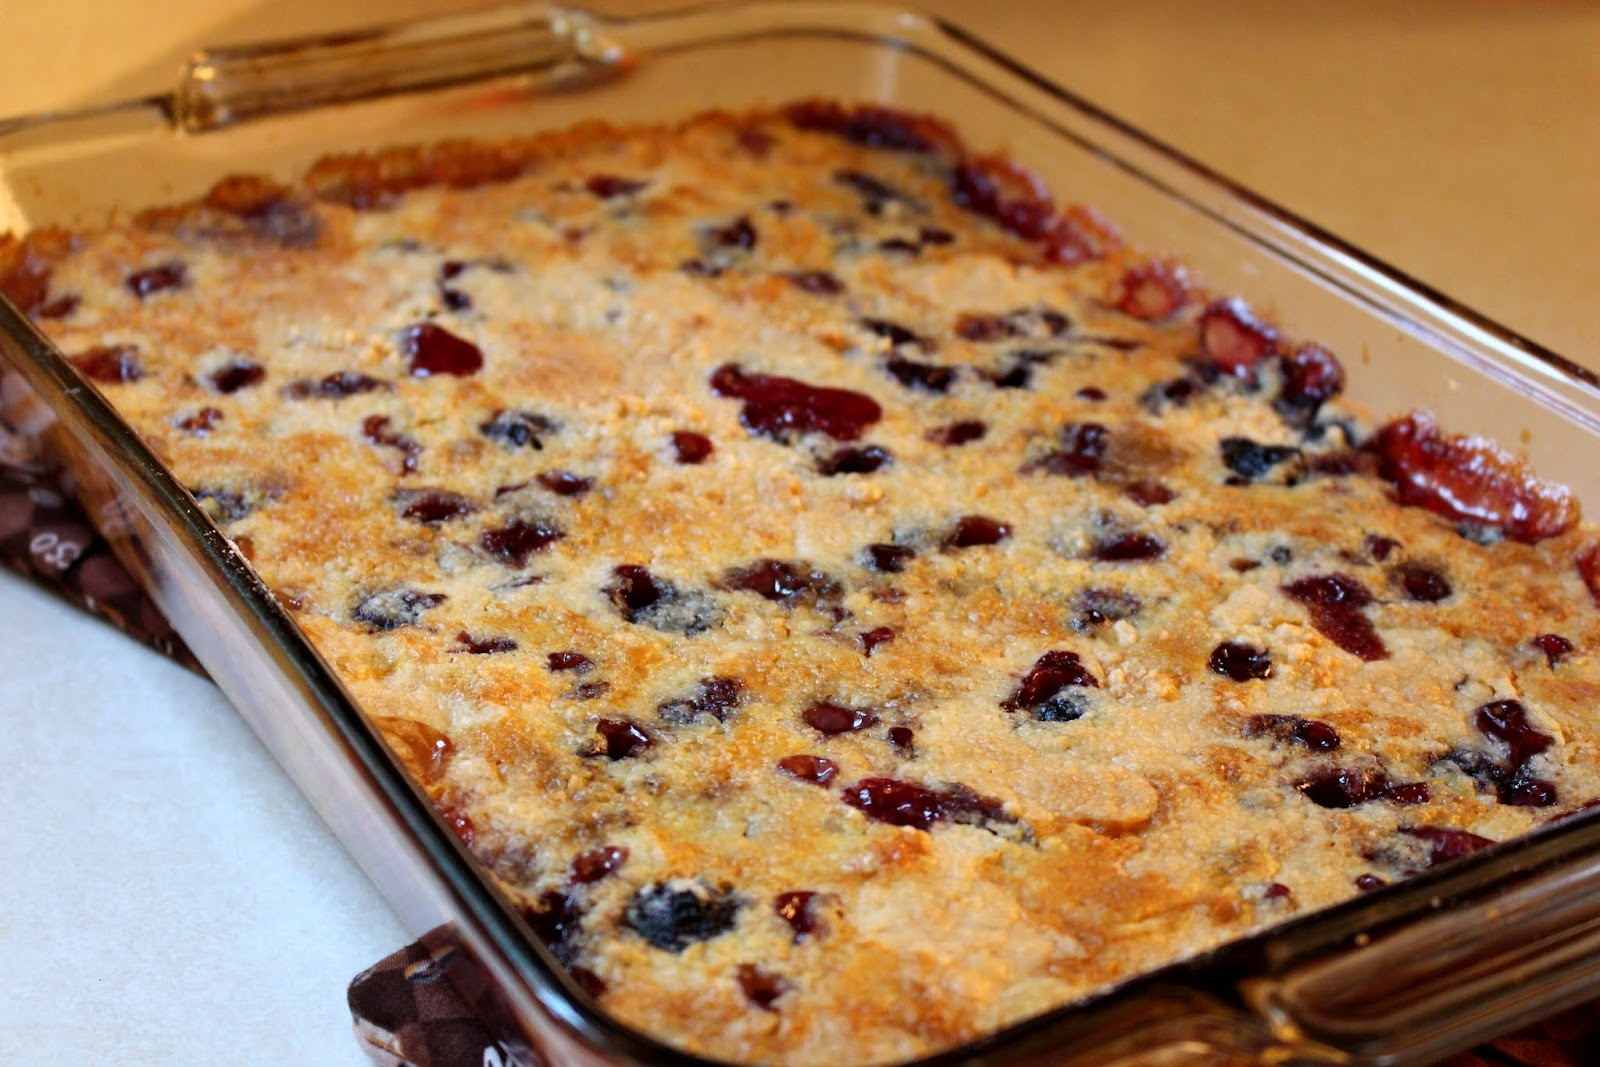 peach blueberry dump cake - how to make peach blueberry dump cake - mehaffey moments